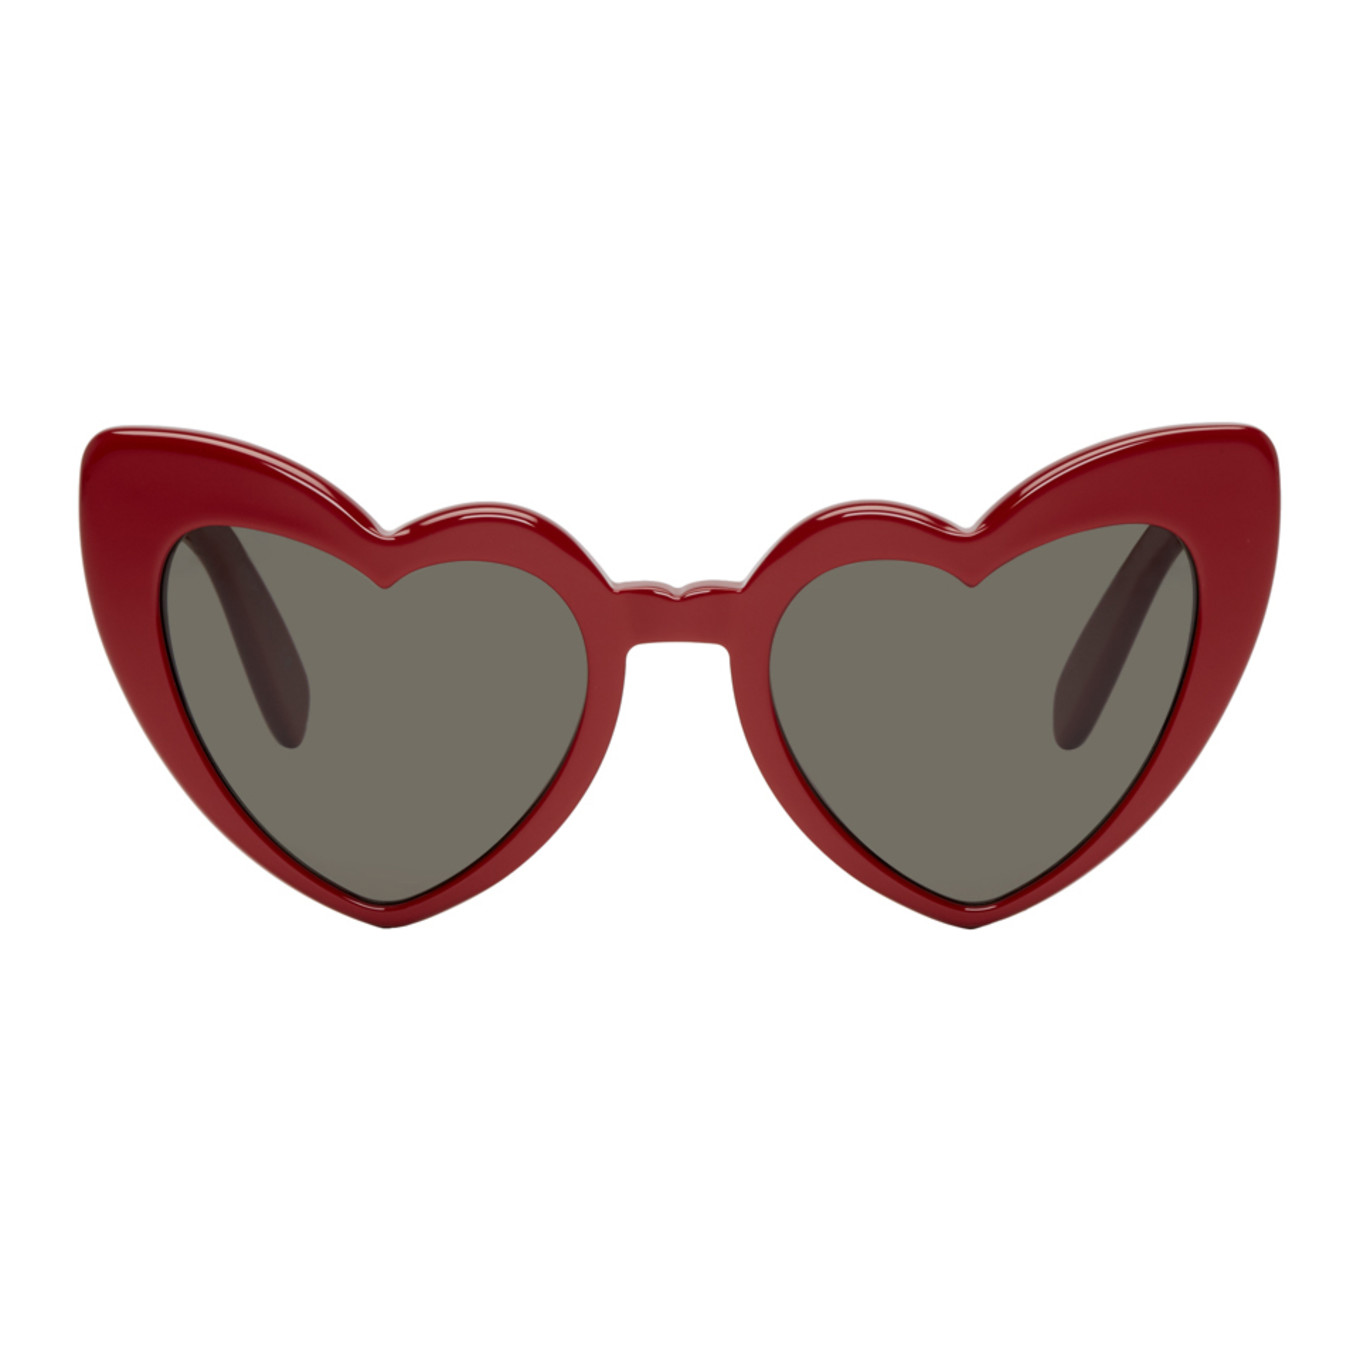 Saint Laurent Red SL 181 Lou Lou Sunglasses